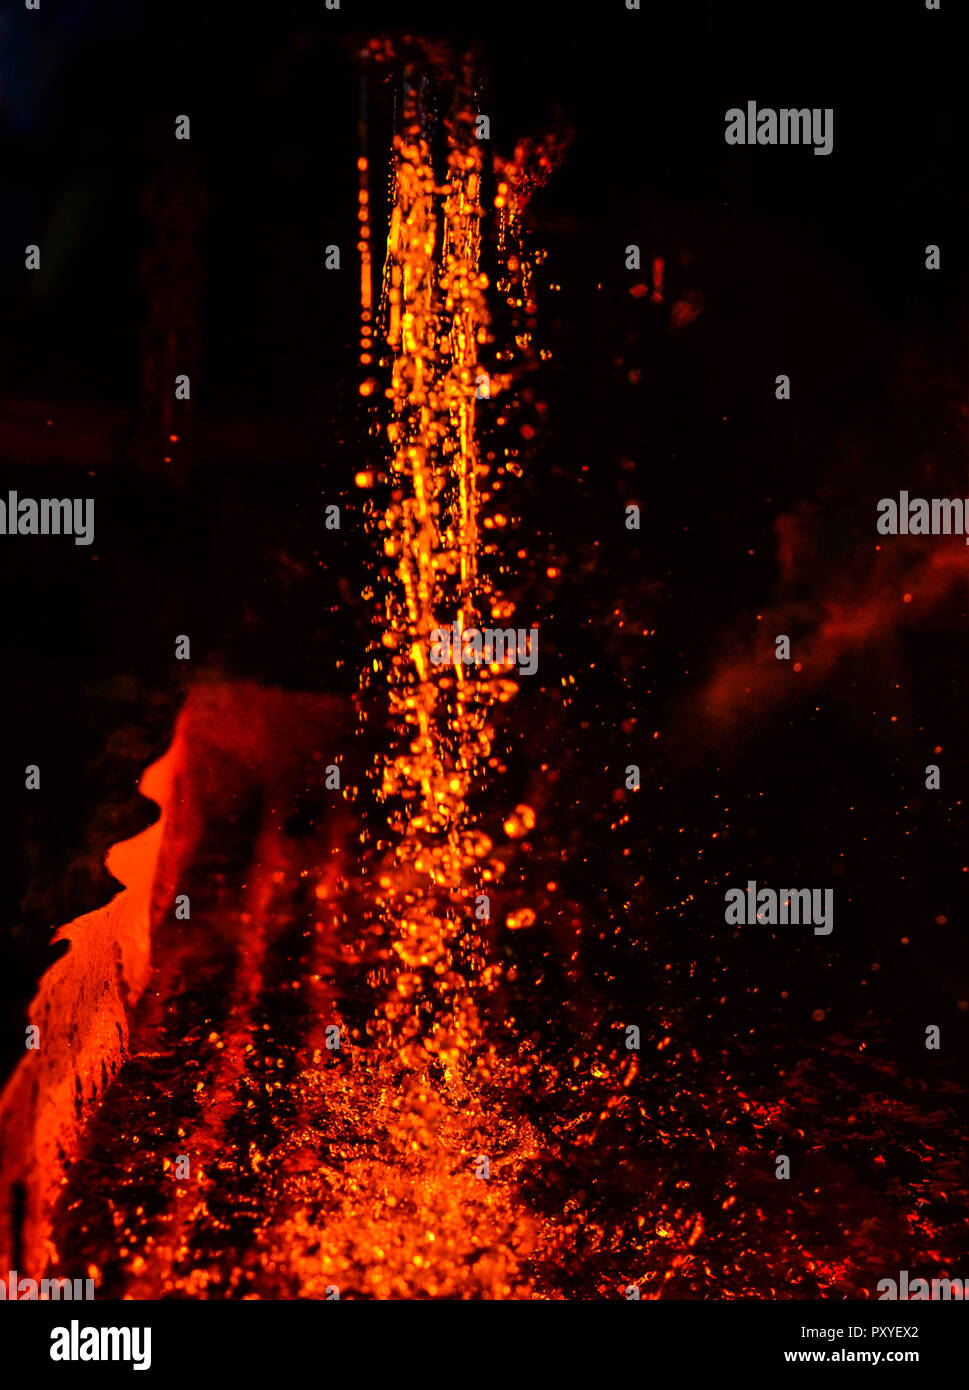 Metal on casting. Metallurgy.  High temperature in the melting furnace. Heavy forging steelmaking plant and steelmaking workshop. Oven. Water curtain. Stock Photo